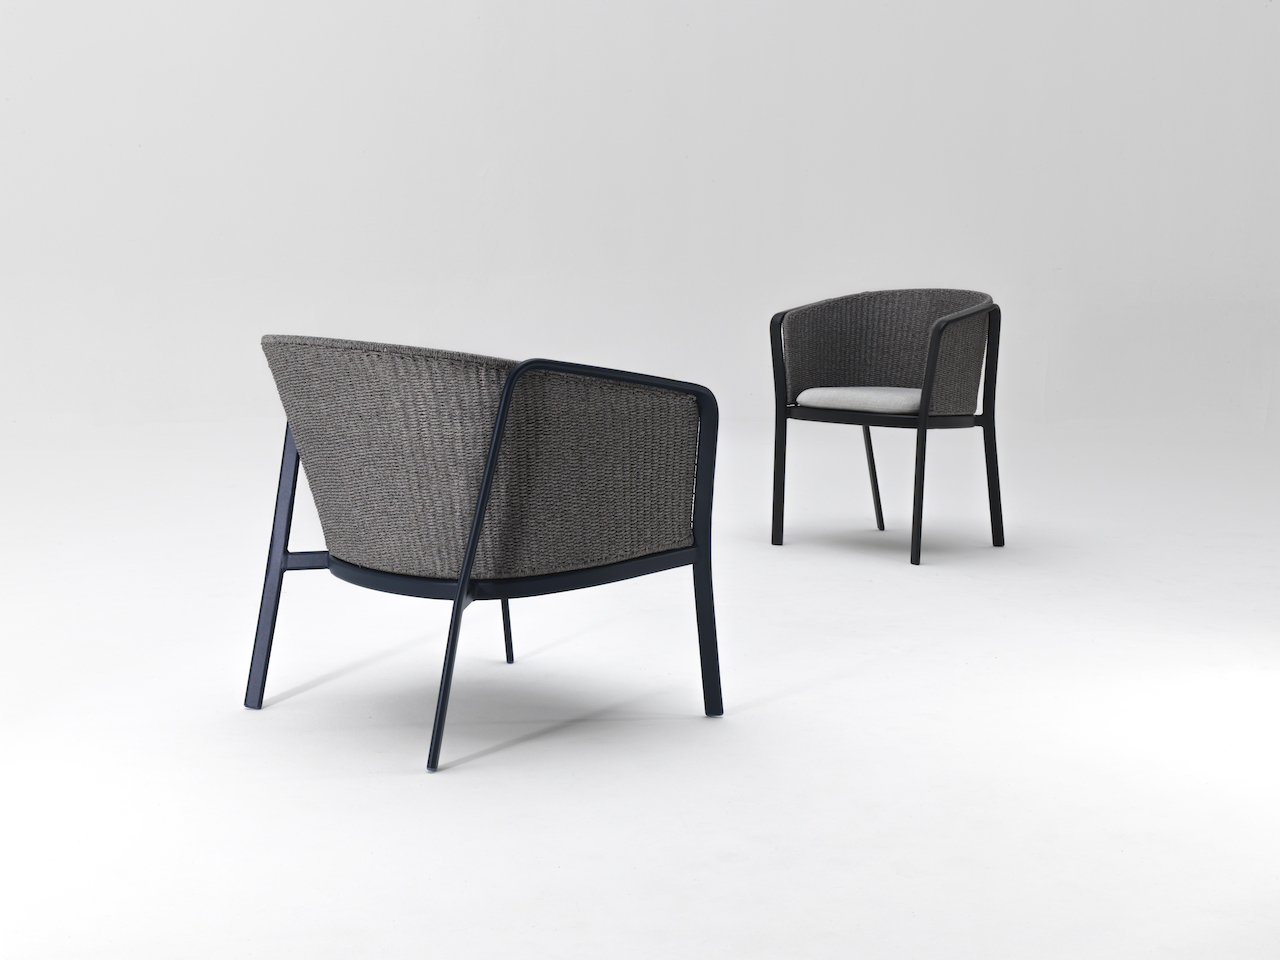 The Carousel Lounge chair and armchair. Design Sebastian Herkner 2019, Emu.